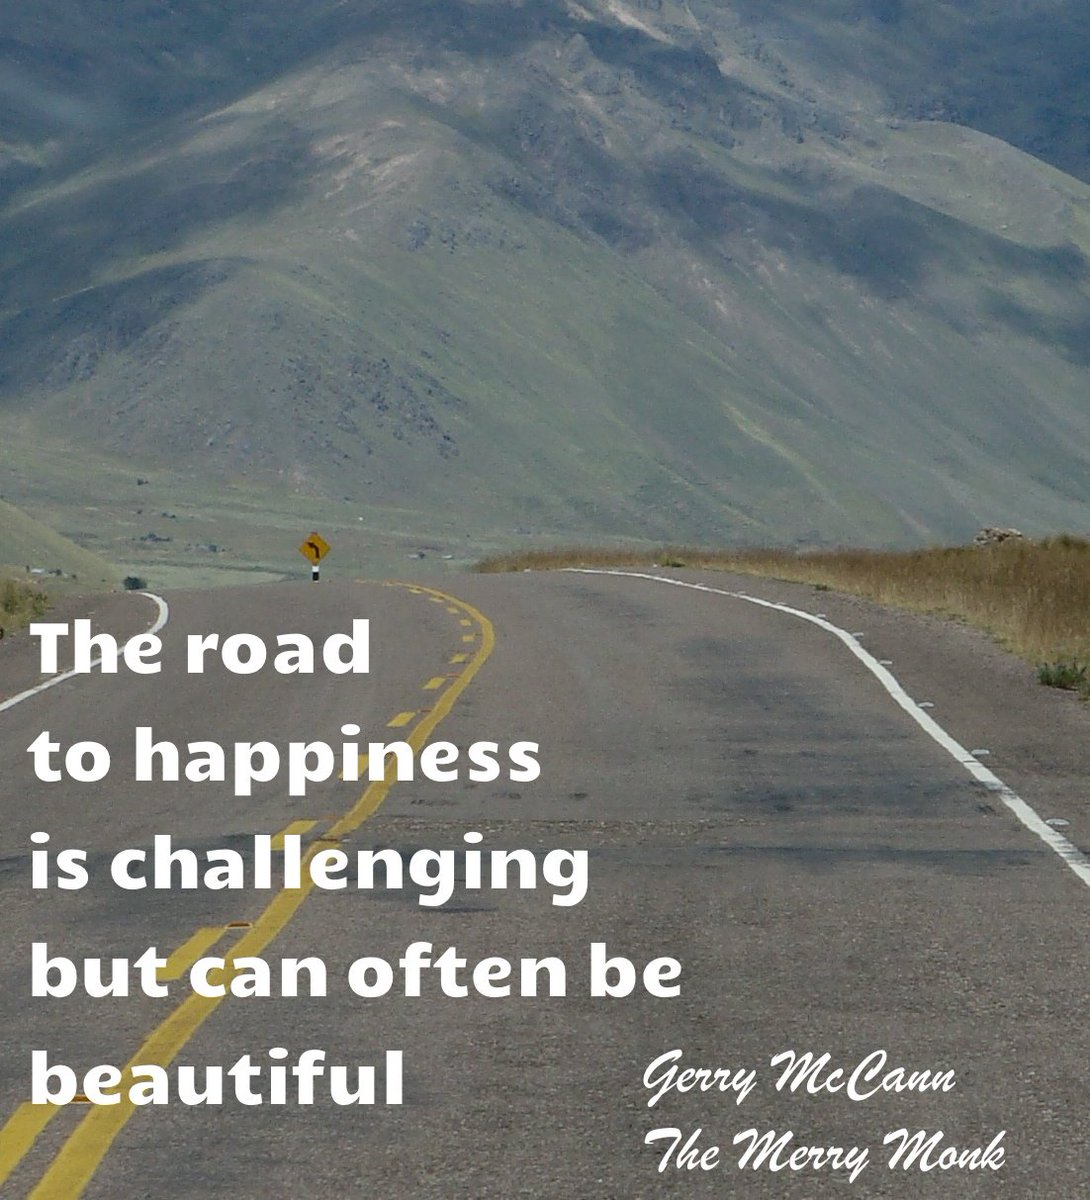 The road to Happiness #leadership #personalgrowth <br>http://pic.twitter.com/o6n4FNXdoo